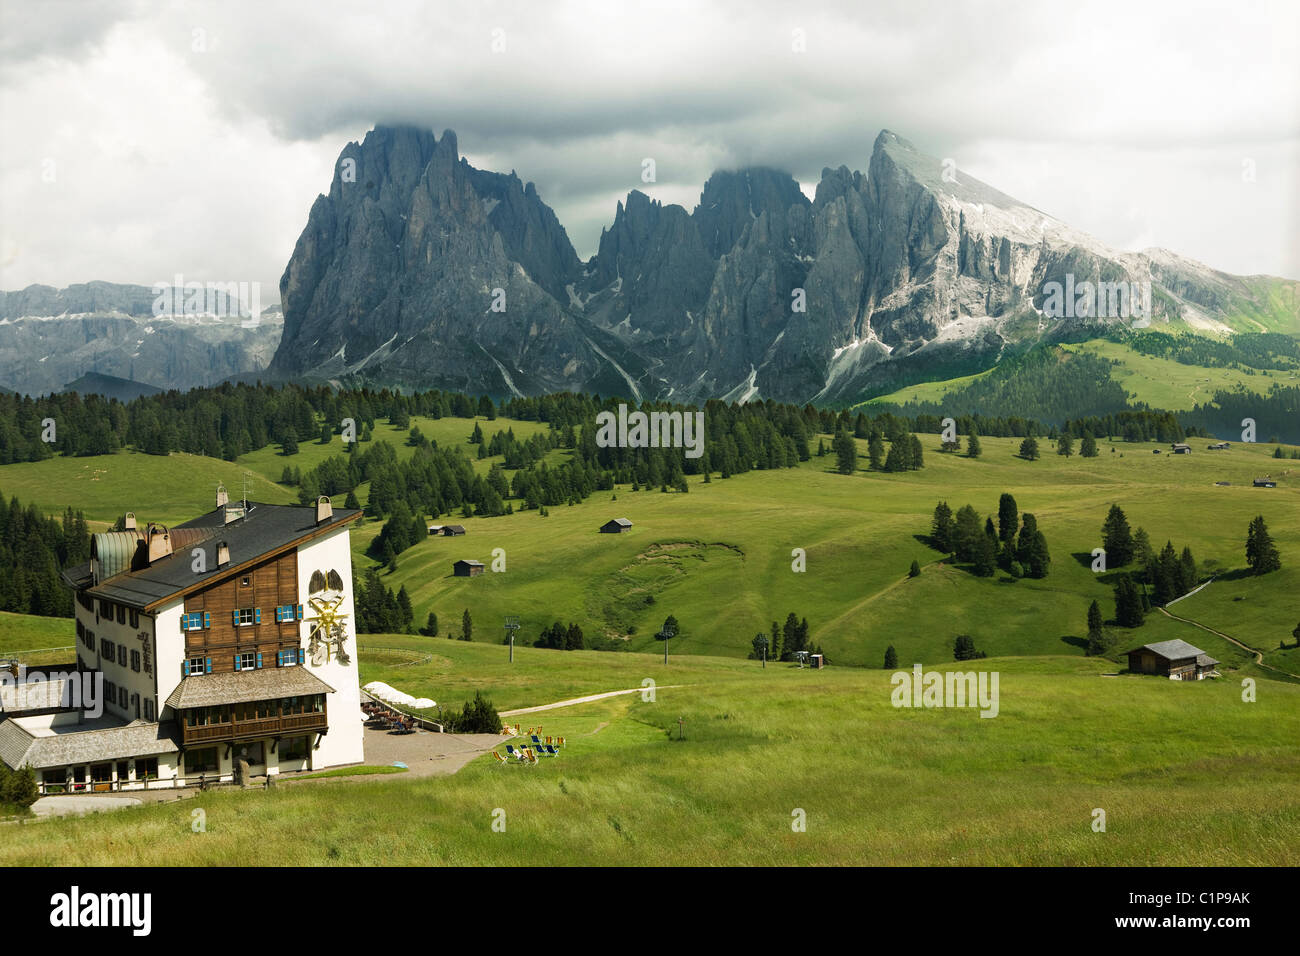 Mountain hostel in valley - Stock Image